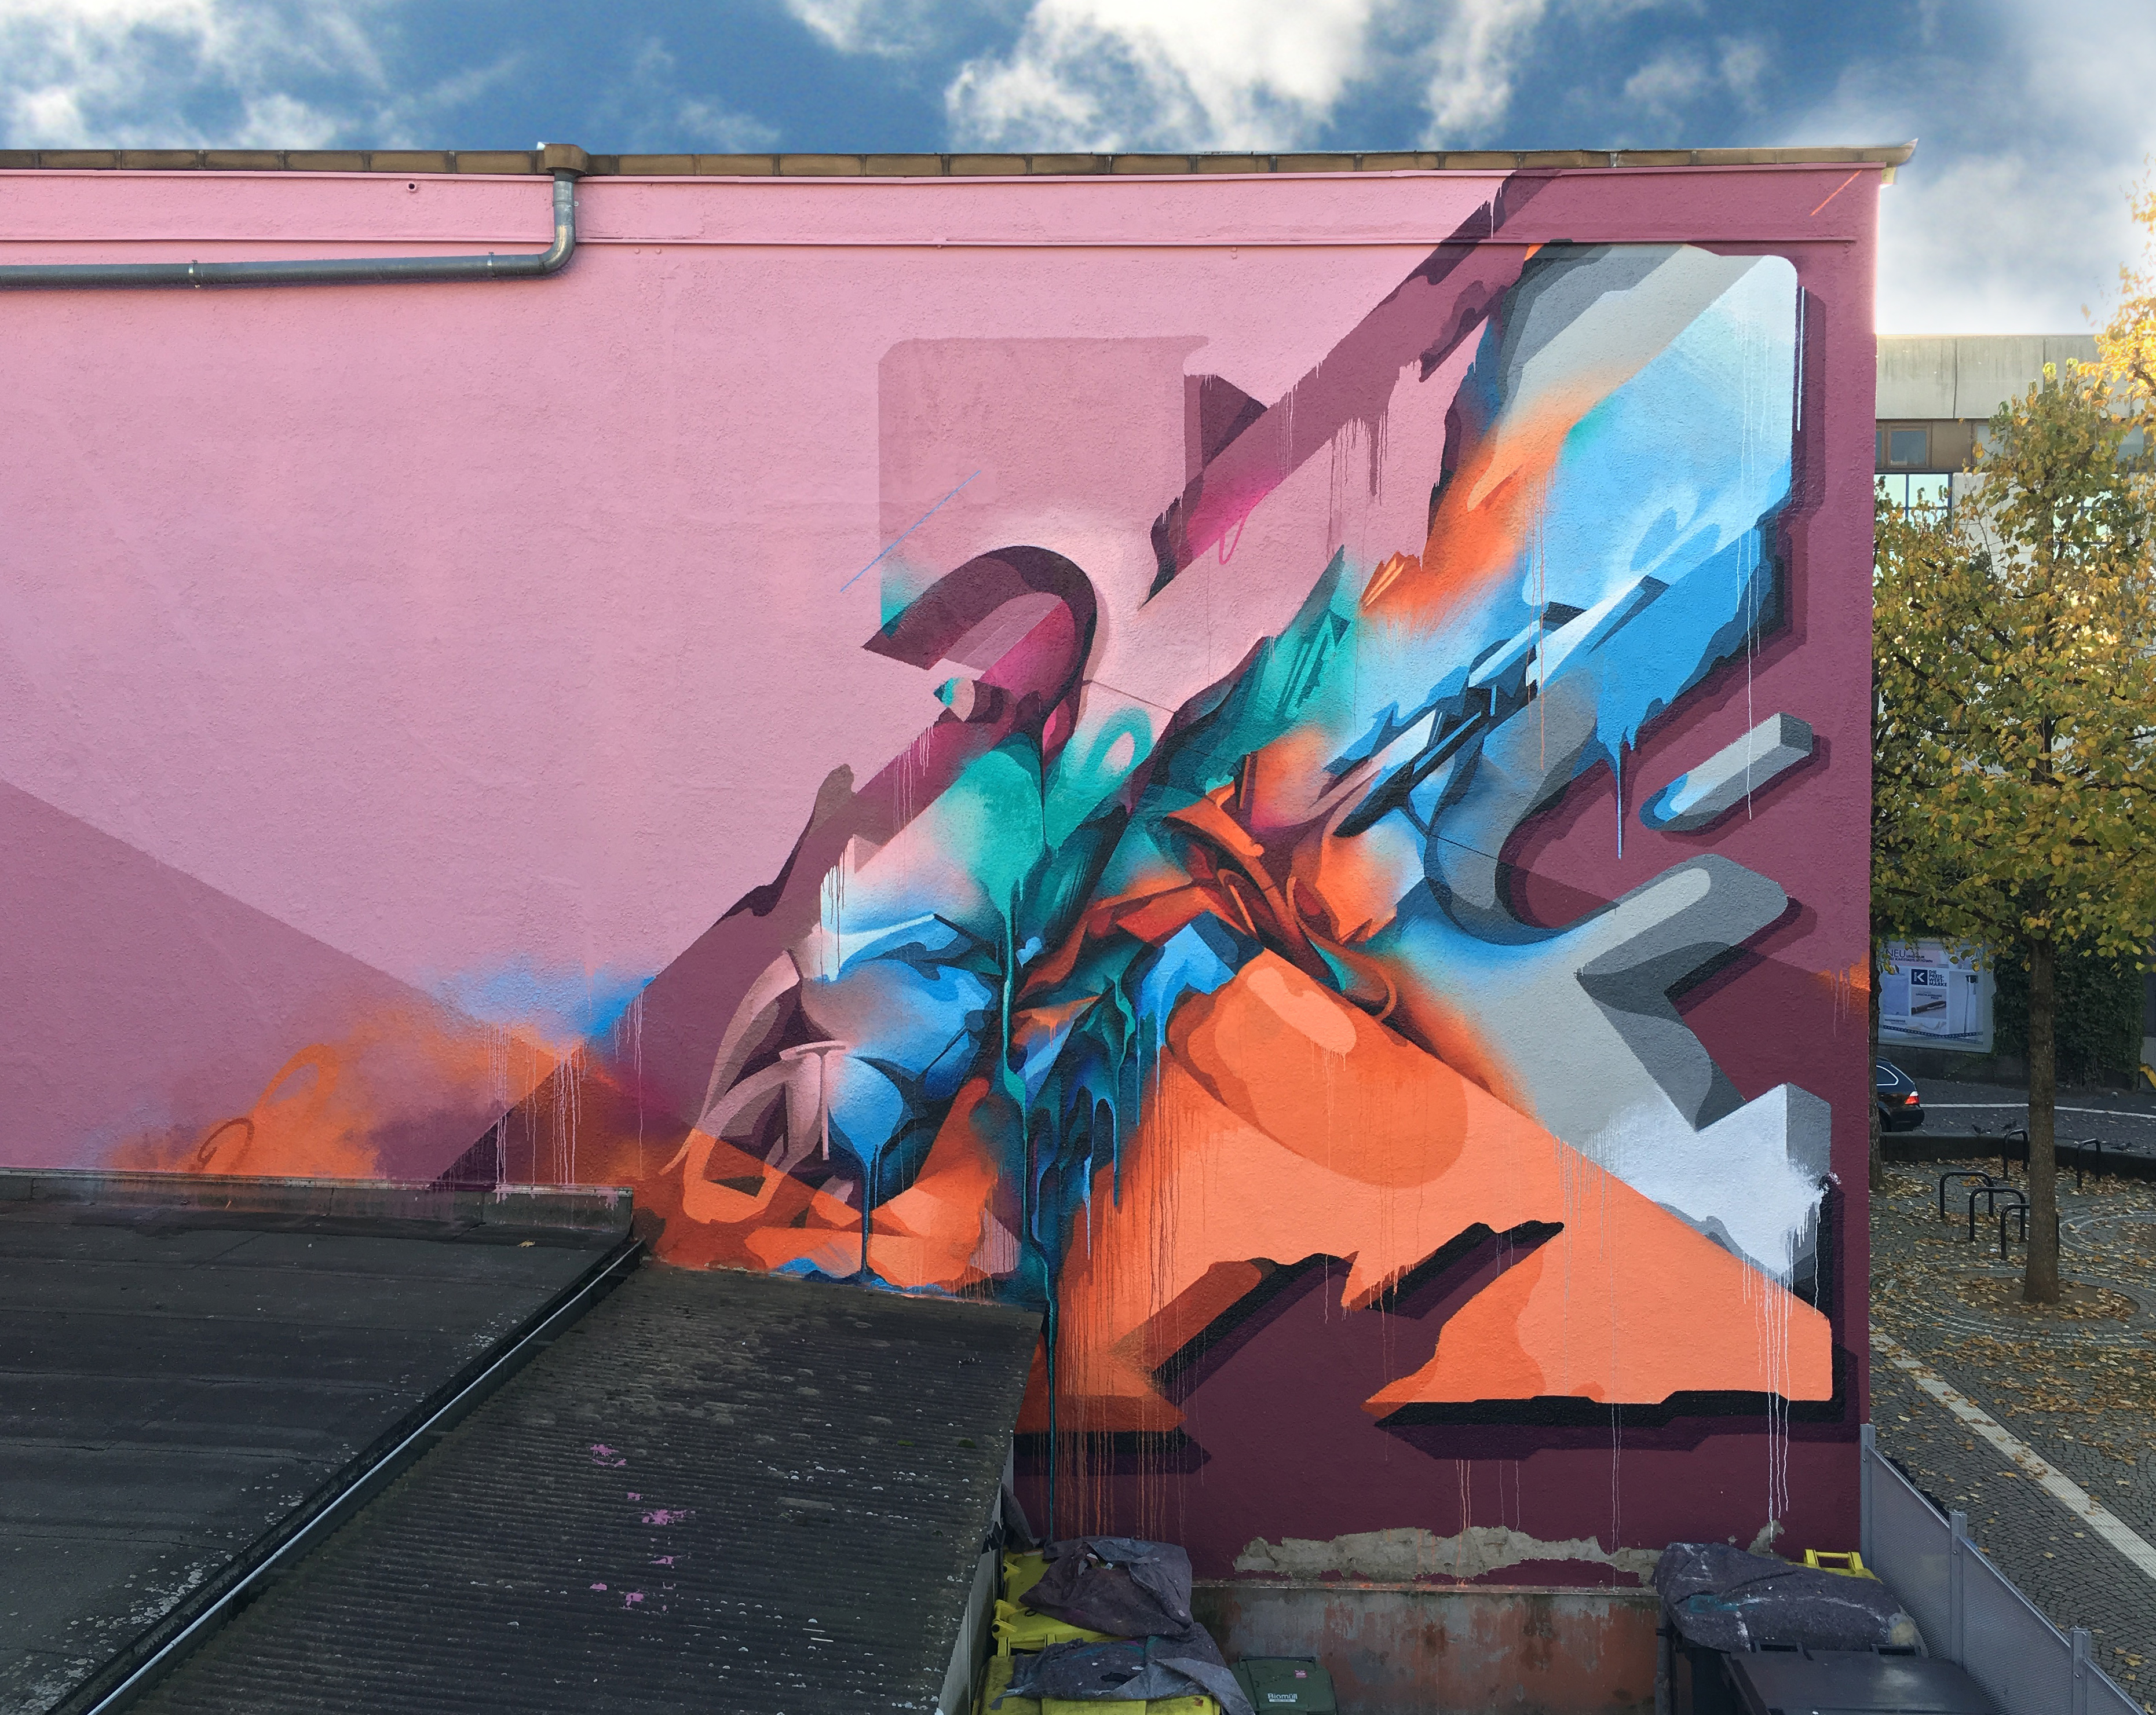 A work by Does - Does_Mural_Giessen, Germany copy